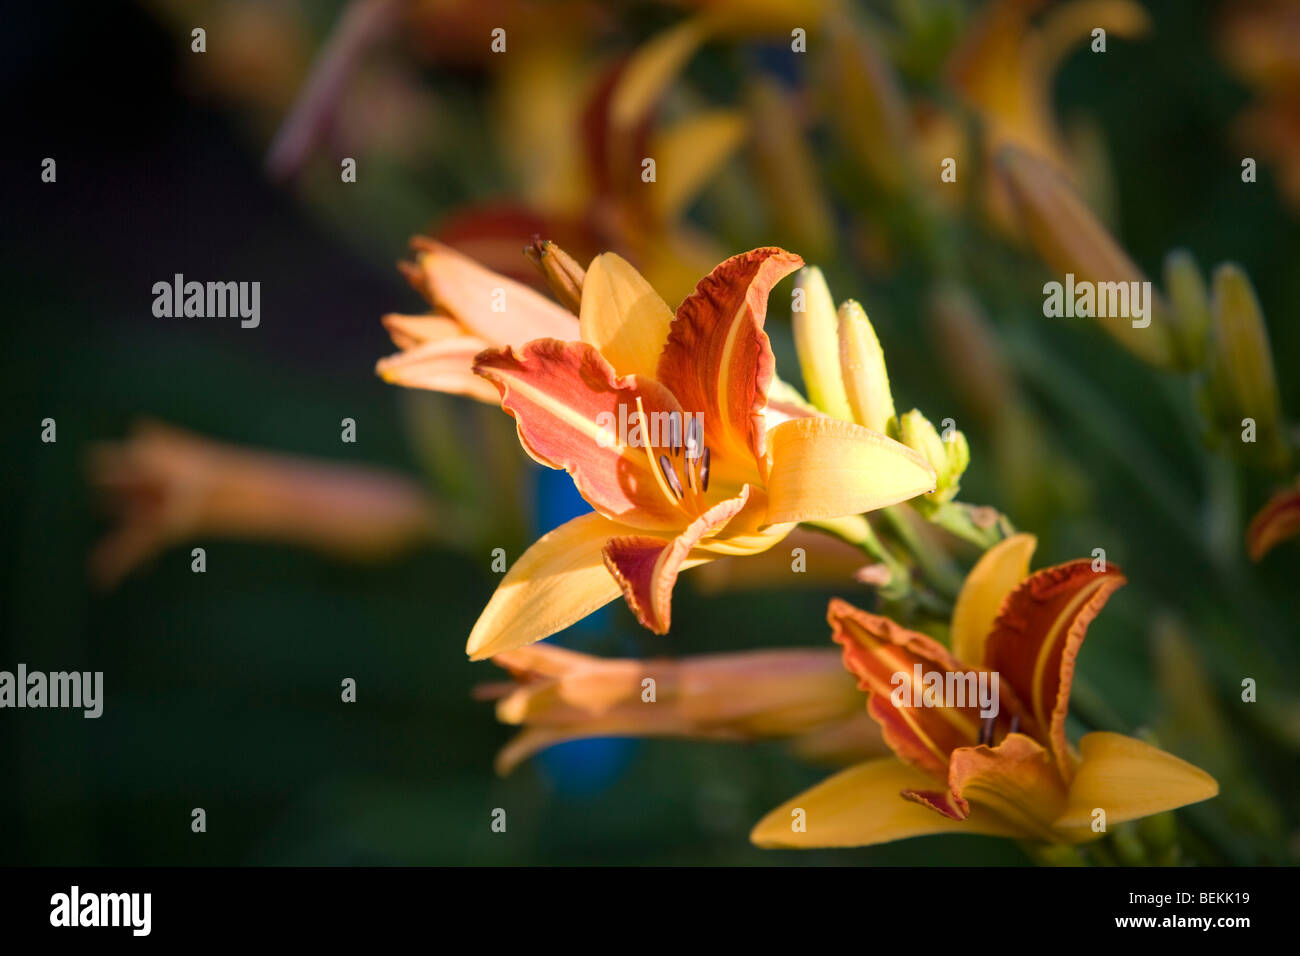 Day Lilies - Stock Image